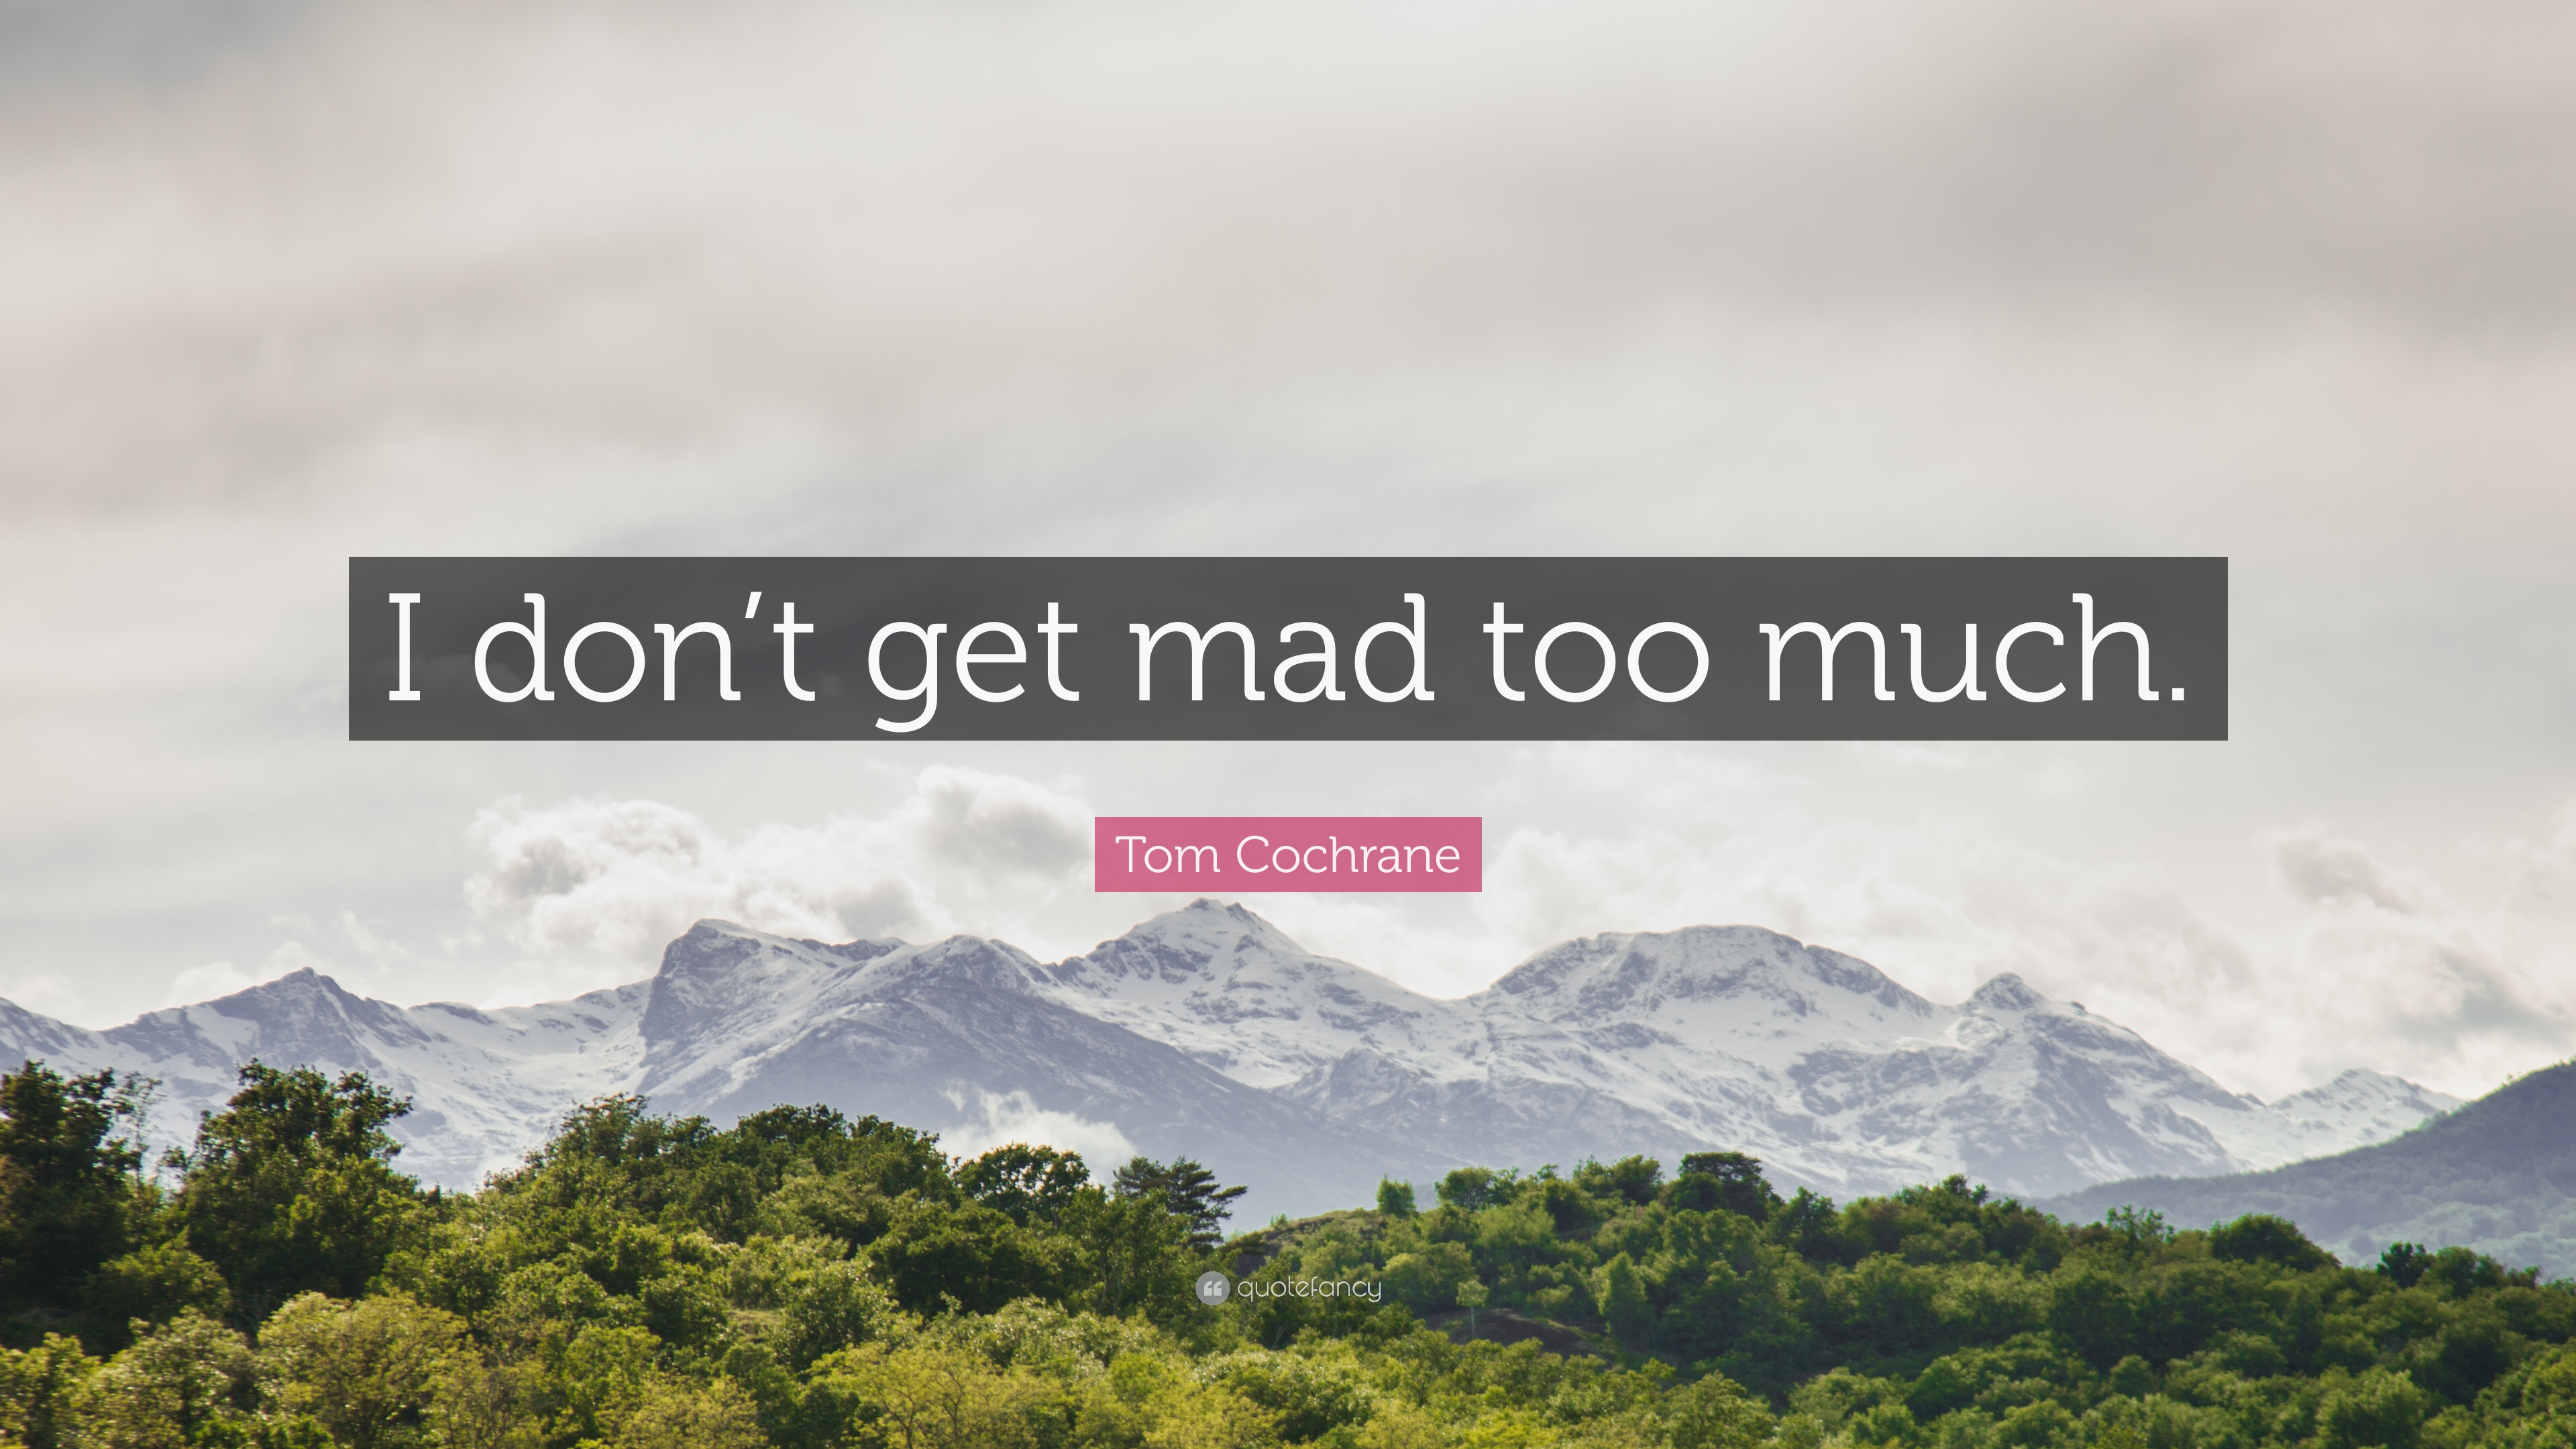 Elegant 7 Wallpapers. Tom Cochrane Quote: U201cI Donu0027t Get Mad ...